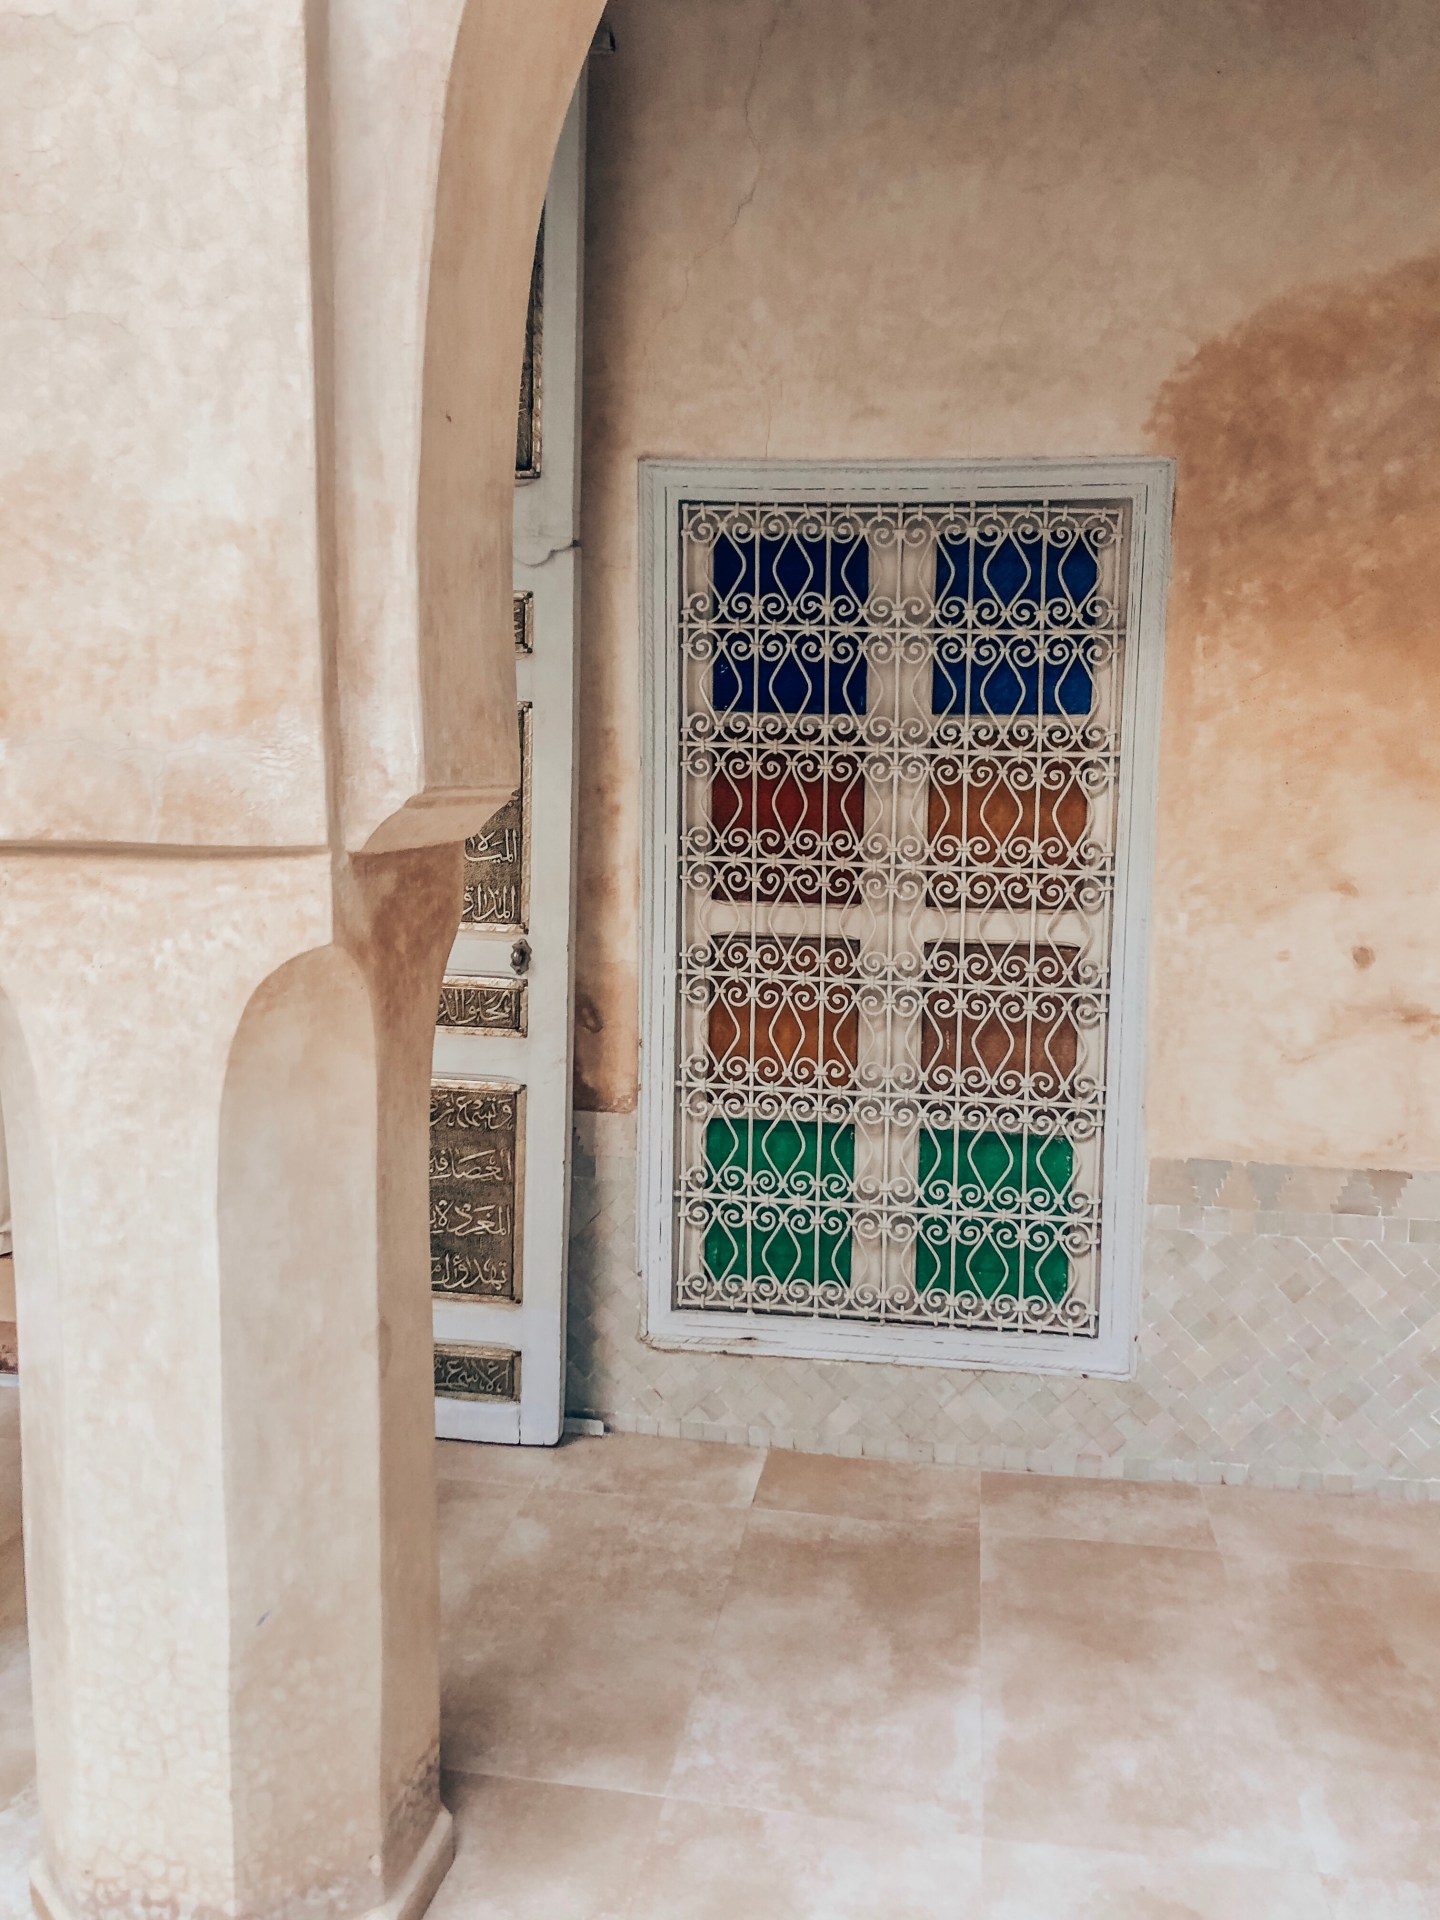 Mashrabiya—traditional custom-made stained glass window used for privacy